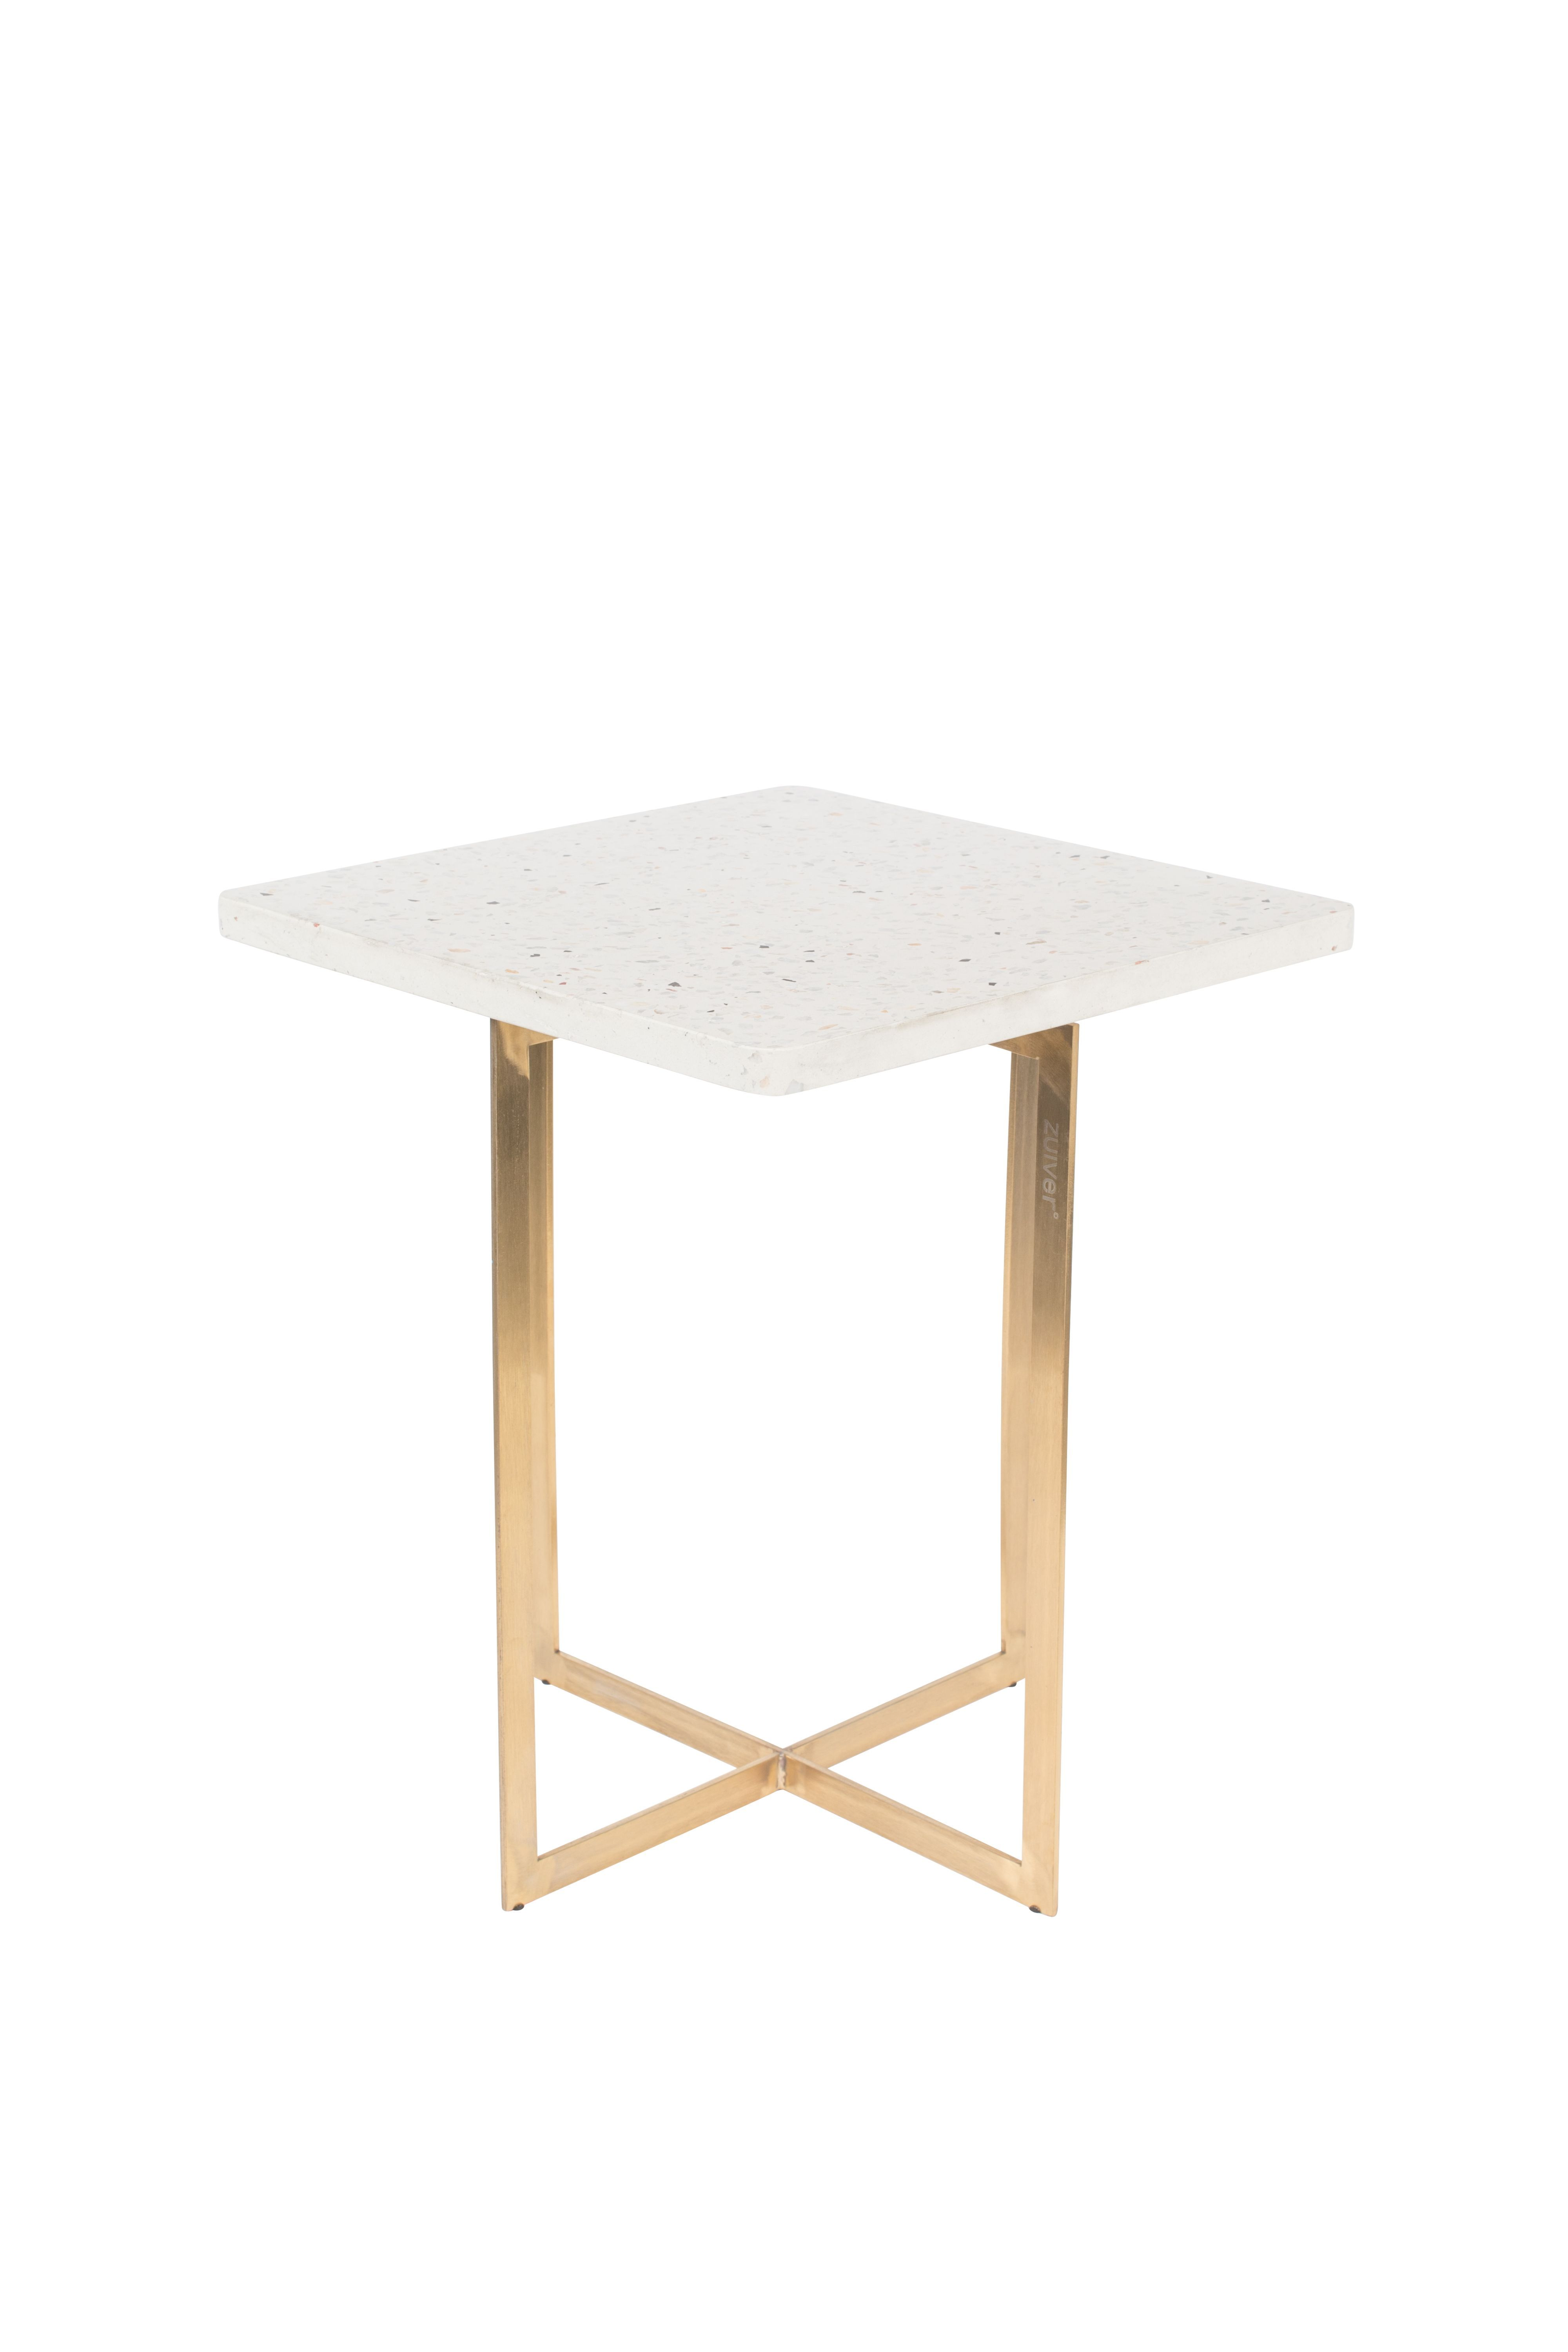 Luigi Side Table Zuiver Patio Furniture For Sale Patio Table Top Square Patio Table [ 6000 x 4000 Pixel ]